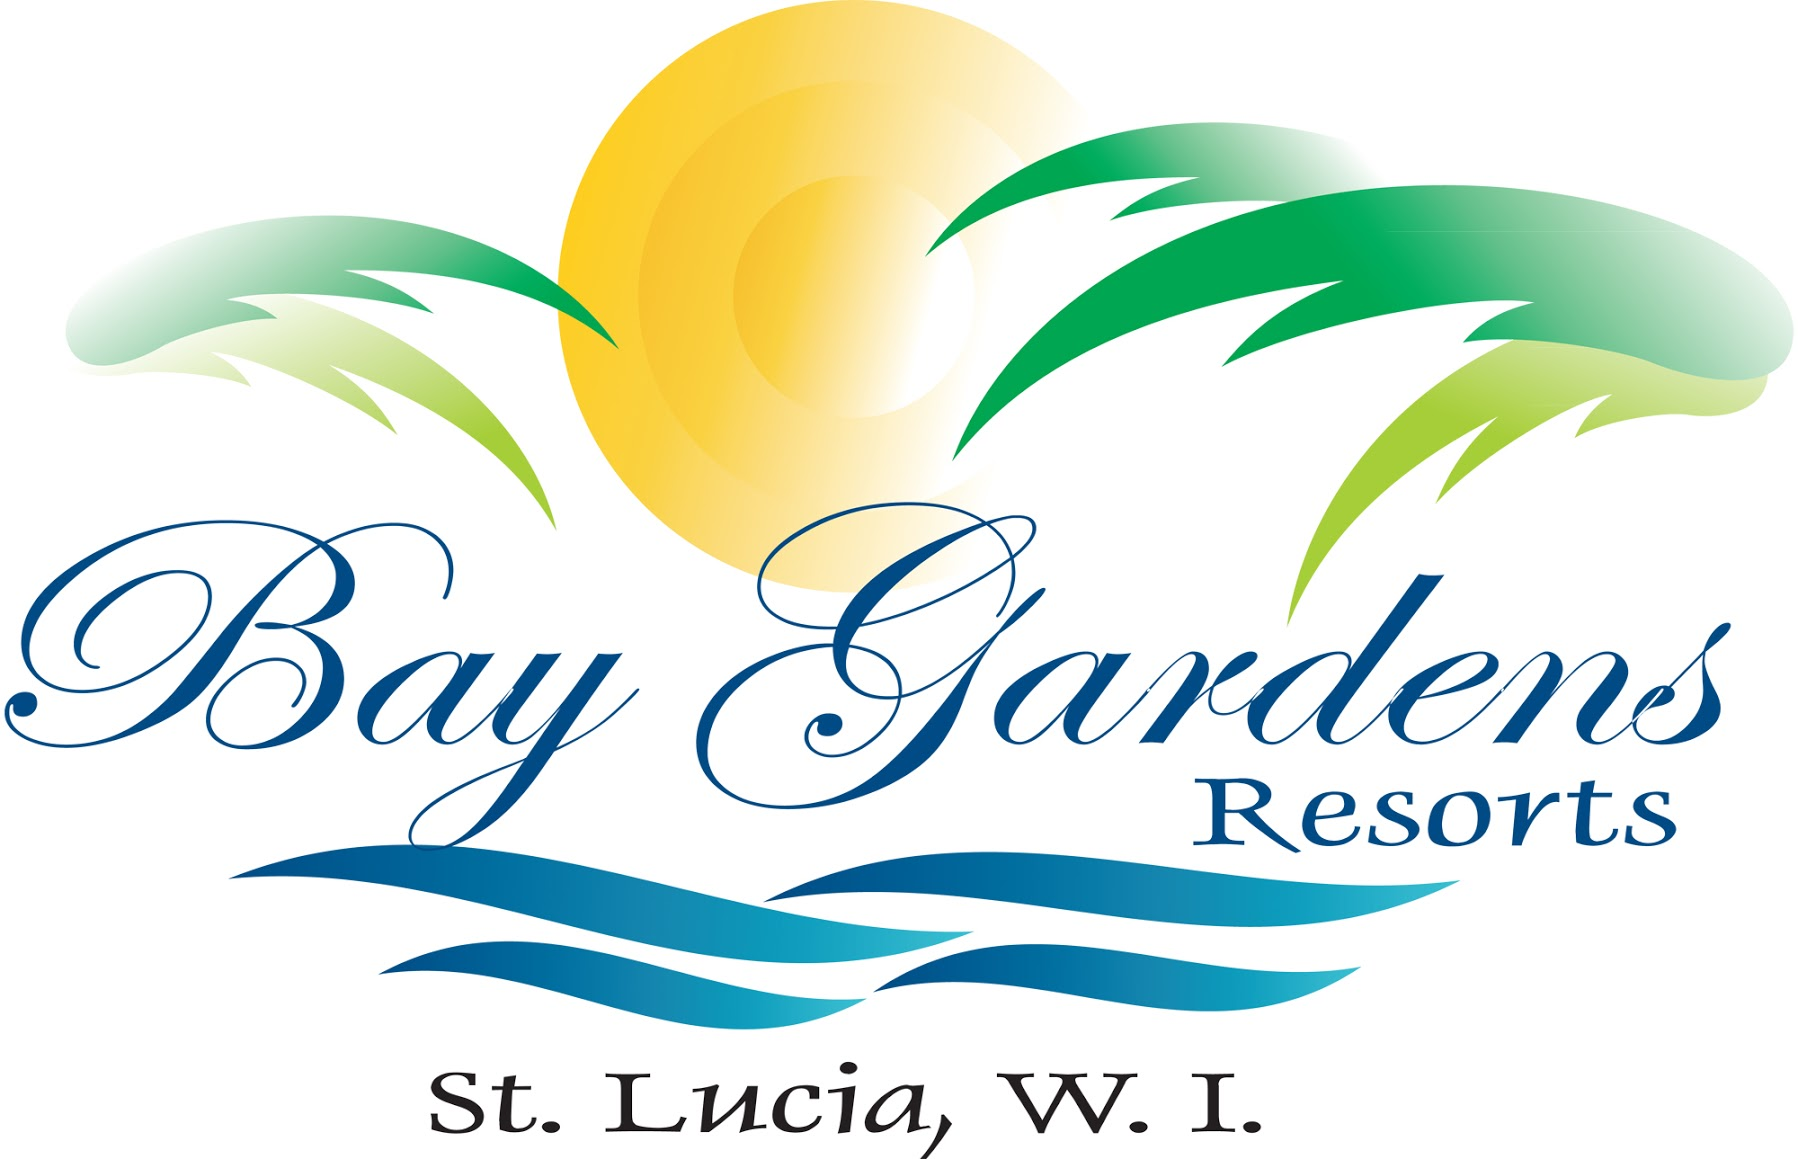 Bay Gardens Resorts & Spa